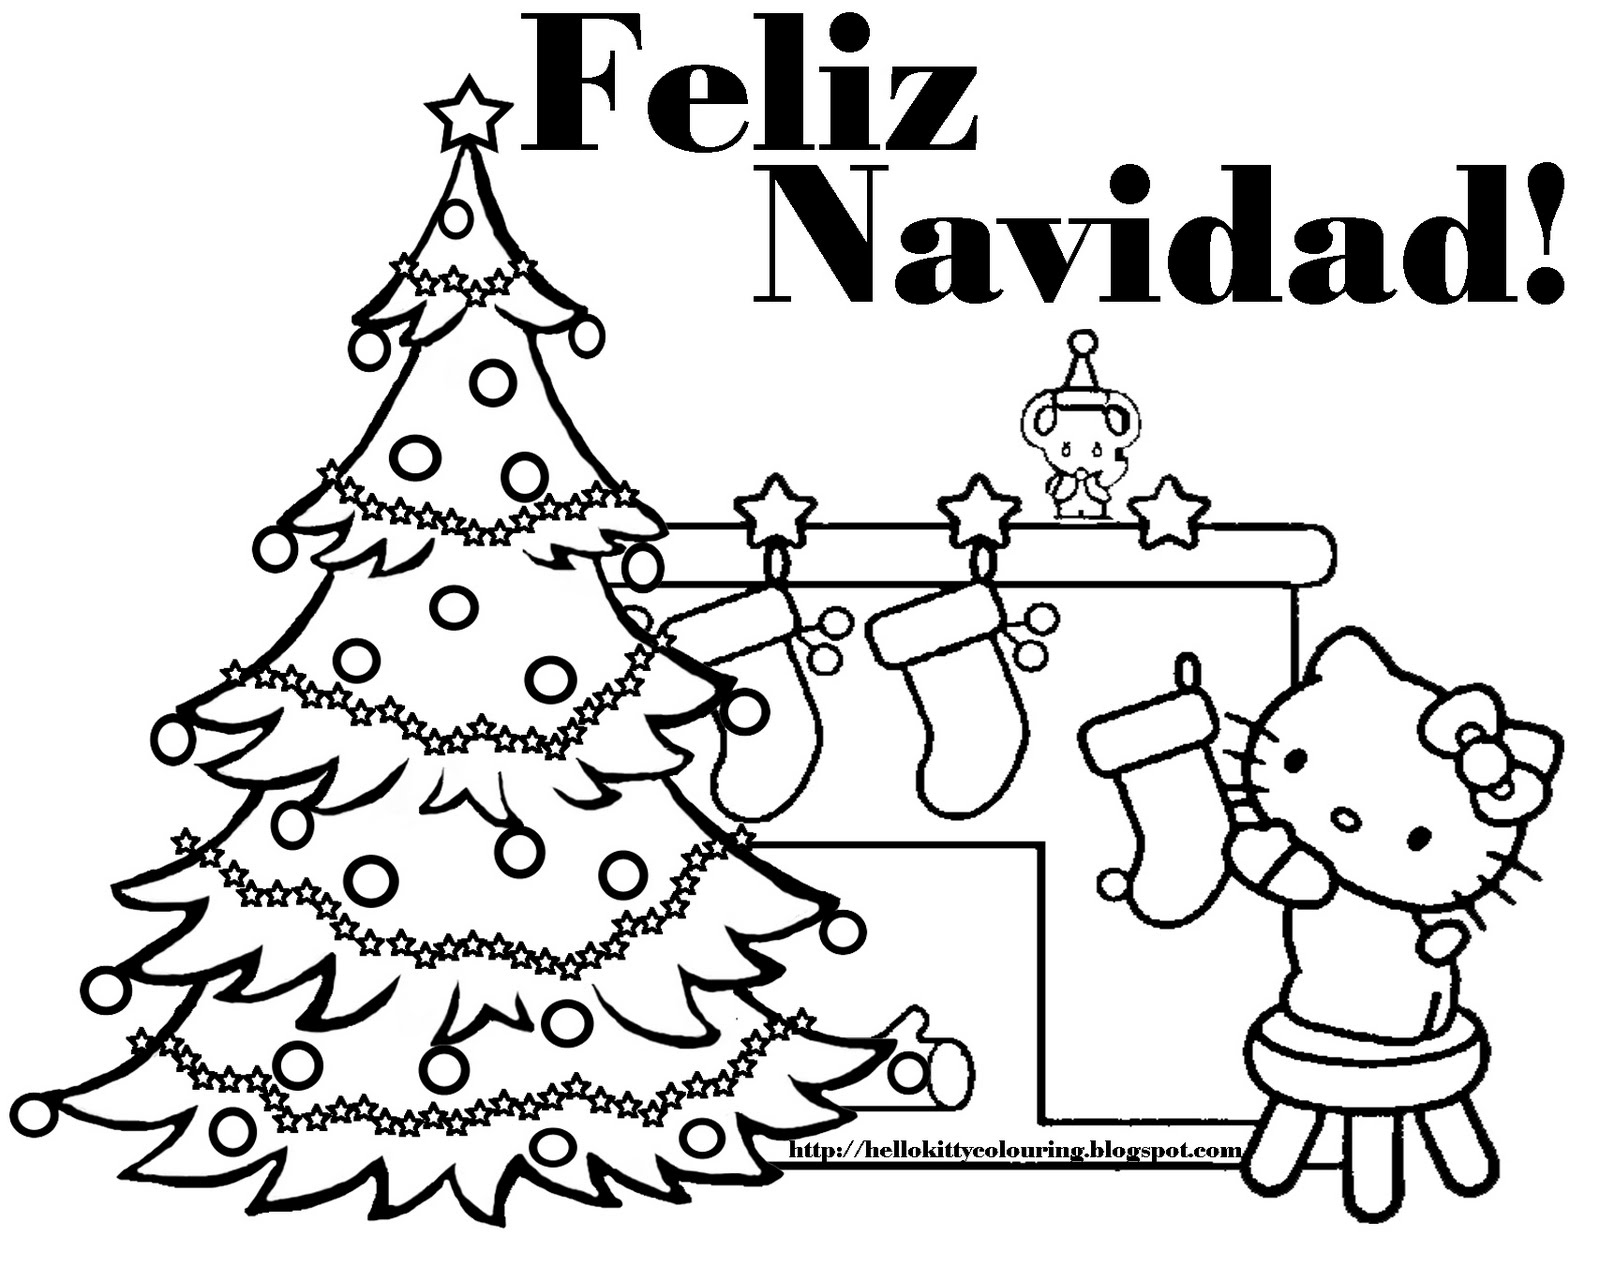 feliz navidad coloring pages - hello kitty coloring pages